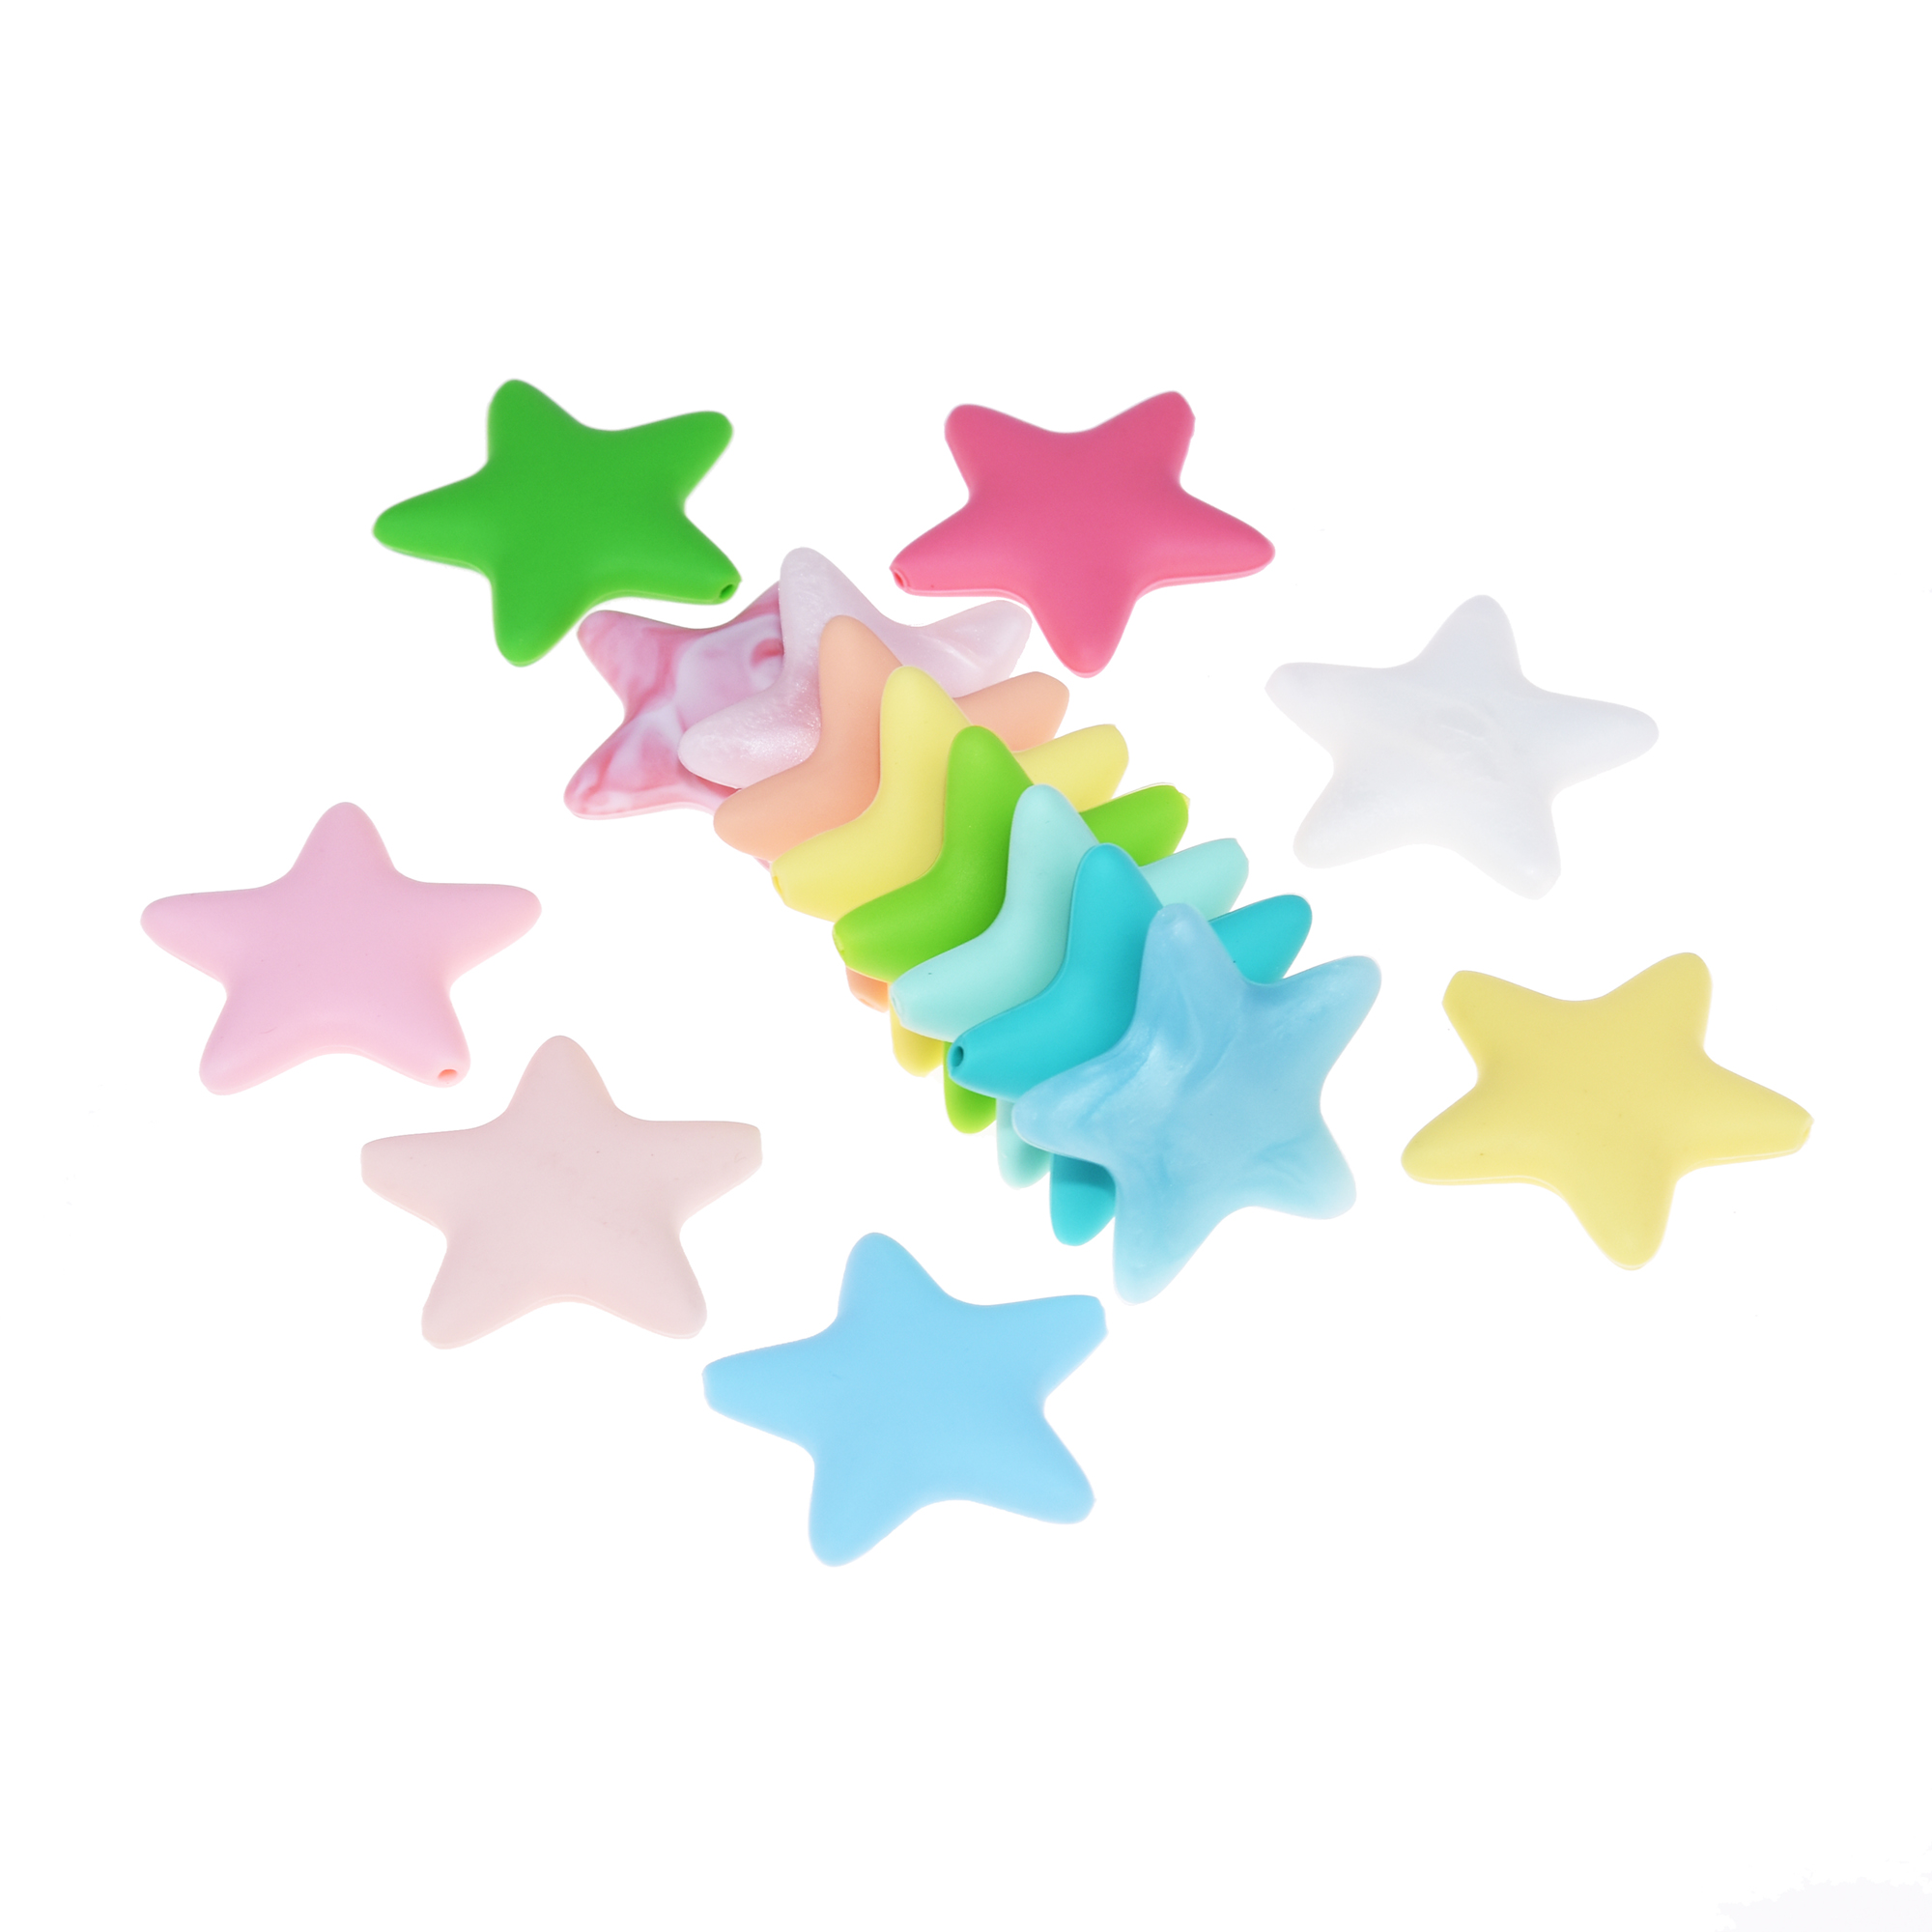 Happyfriends 10 Pieces Star Silicone Beads Baby Teething Loose Beads Teether Food Grade Teether Beads Baby DIY Pacifier Chain